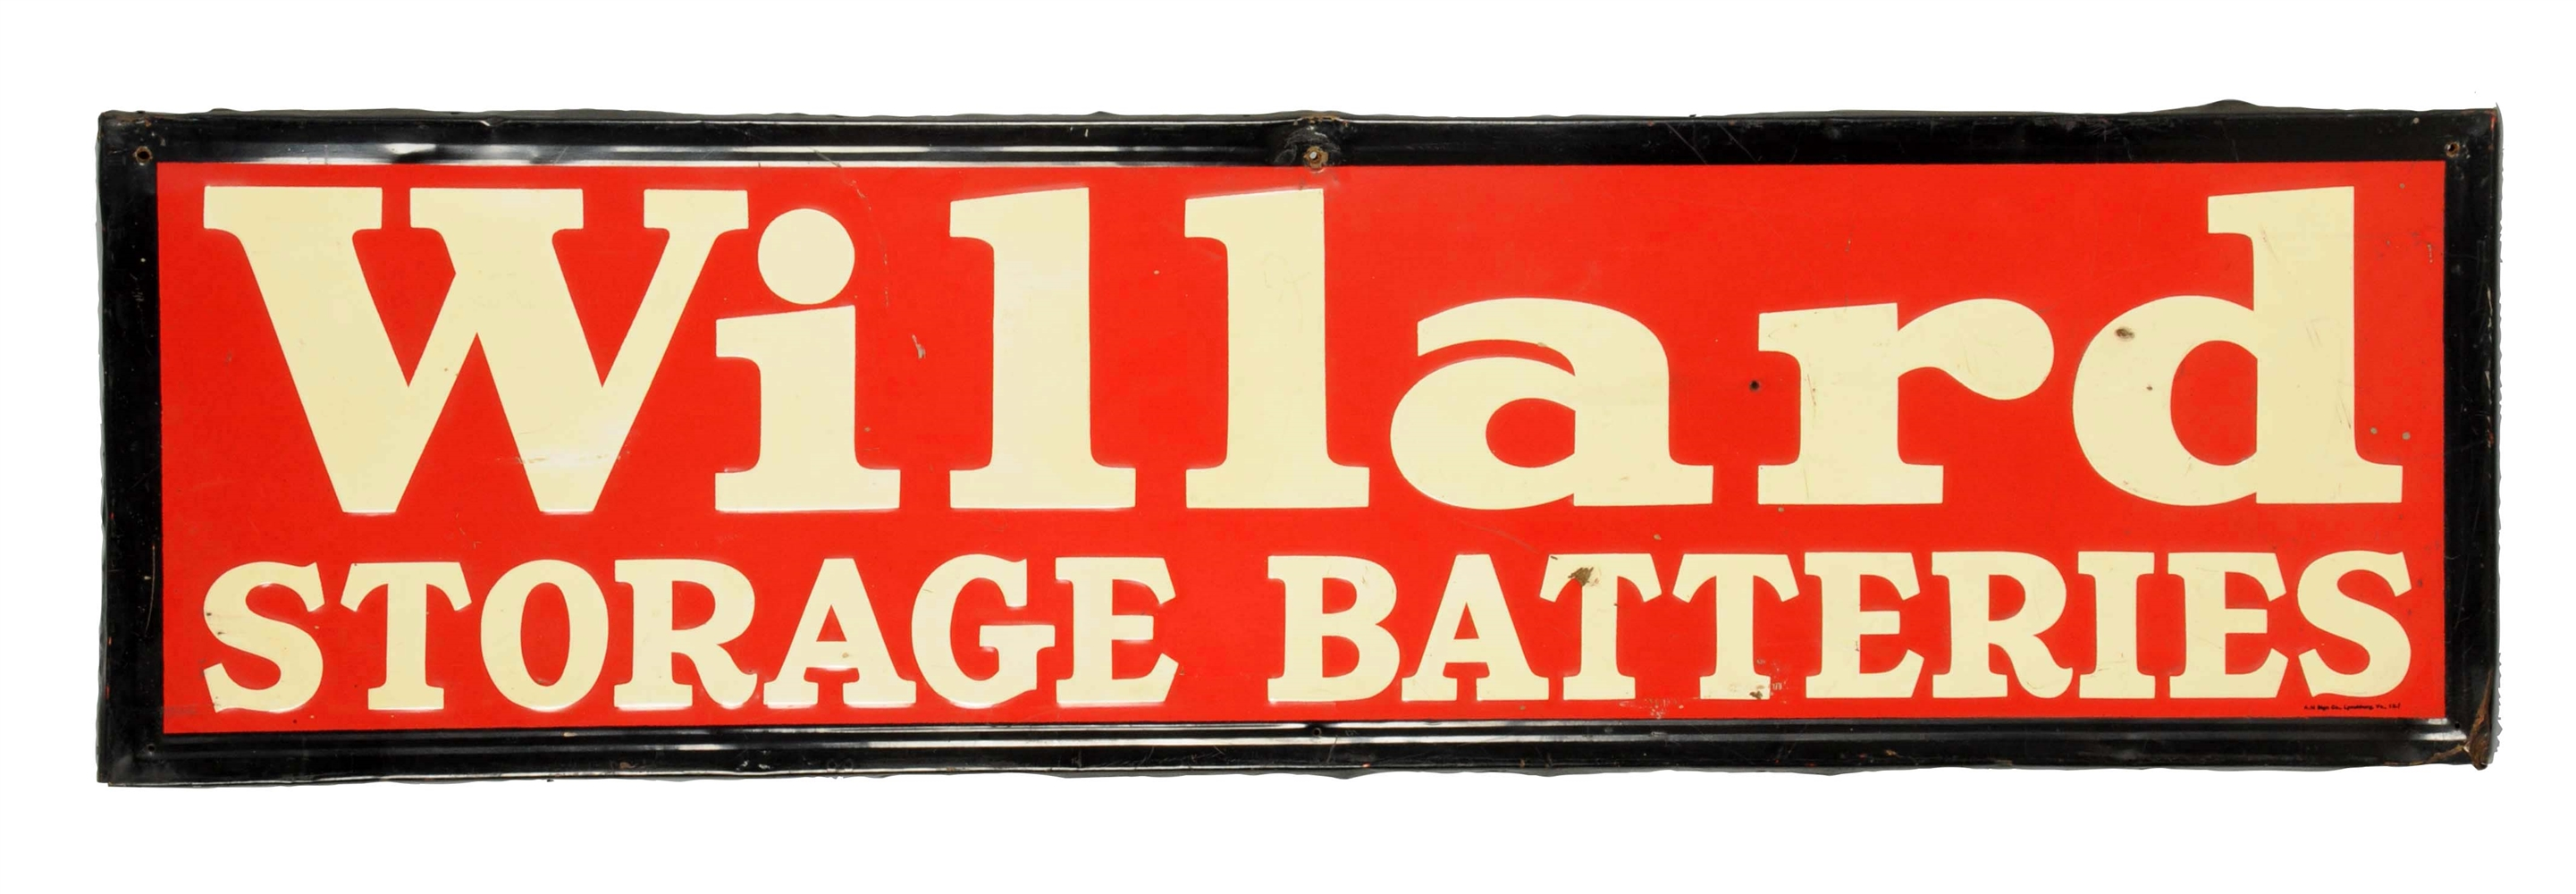 Willard Storage Batteries Embossed Metal Sign.